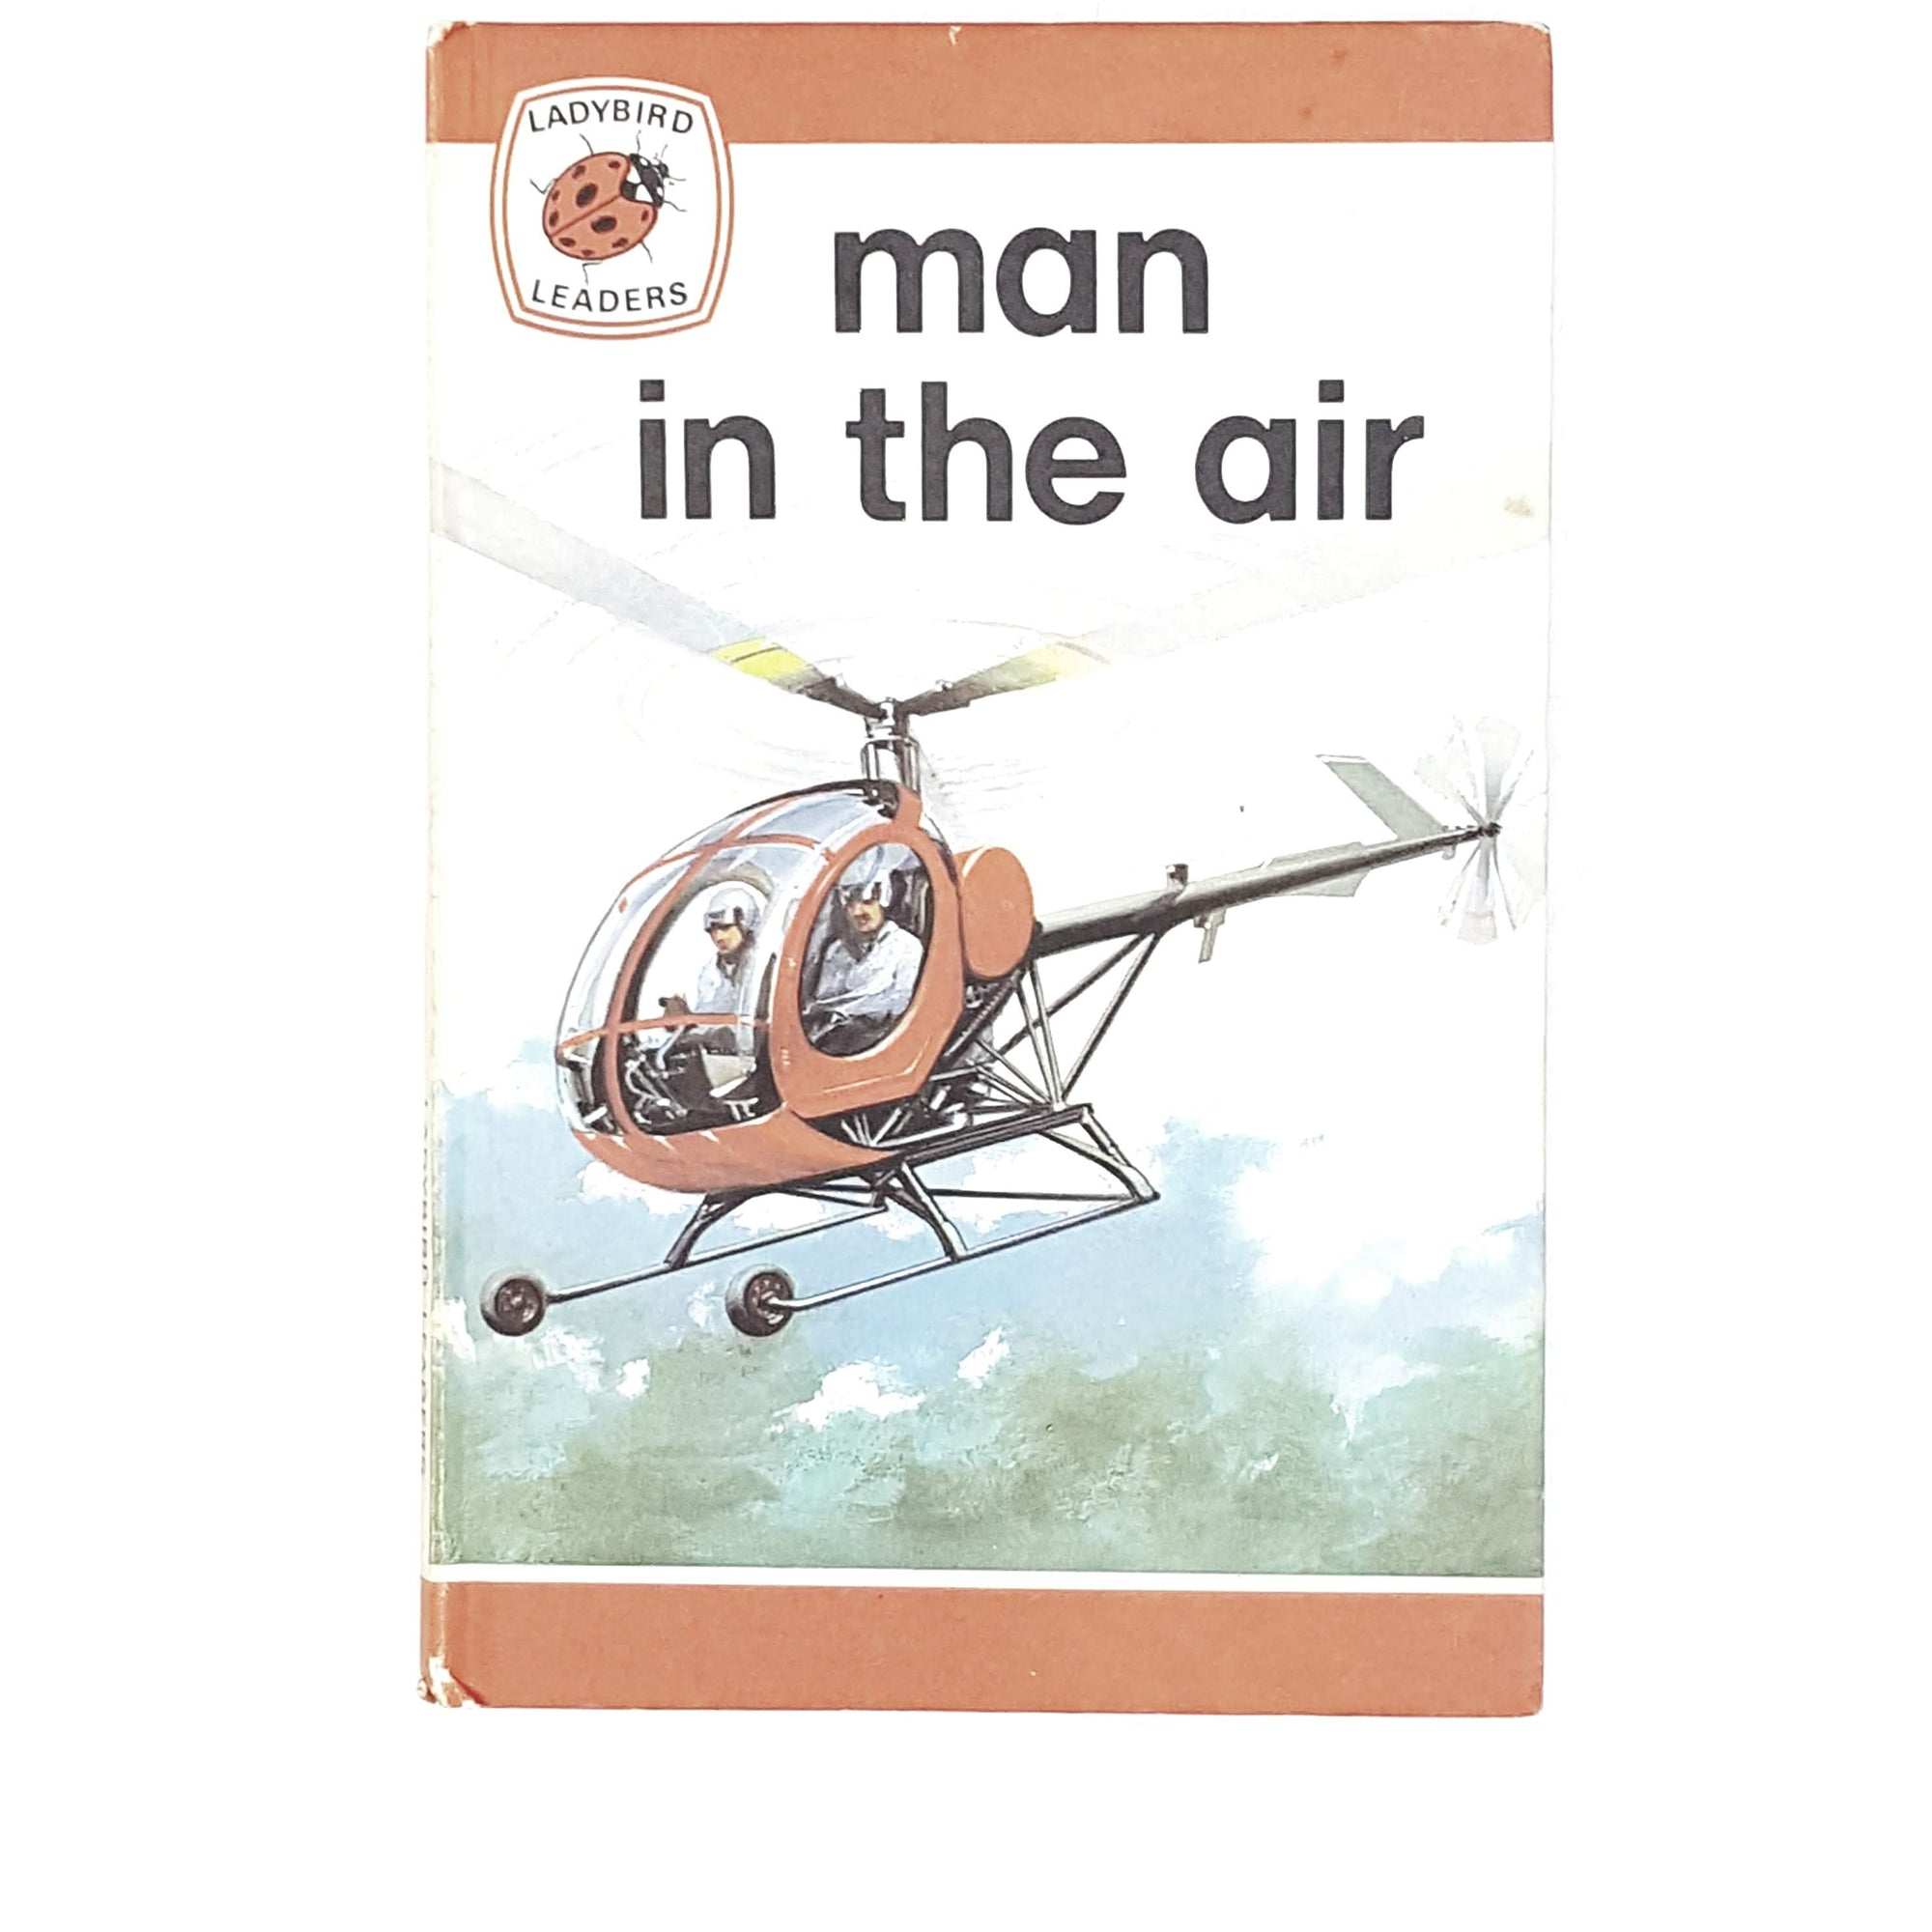 ladybird-leaders-man-in-the-air-1973-country-house-library